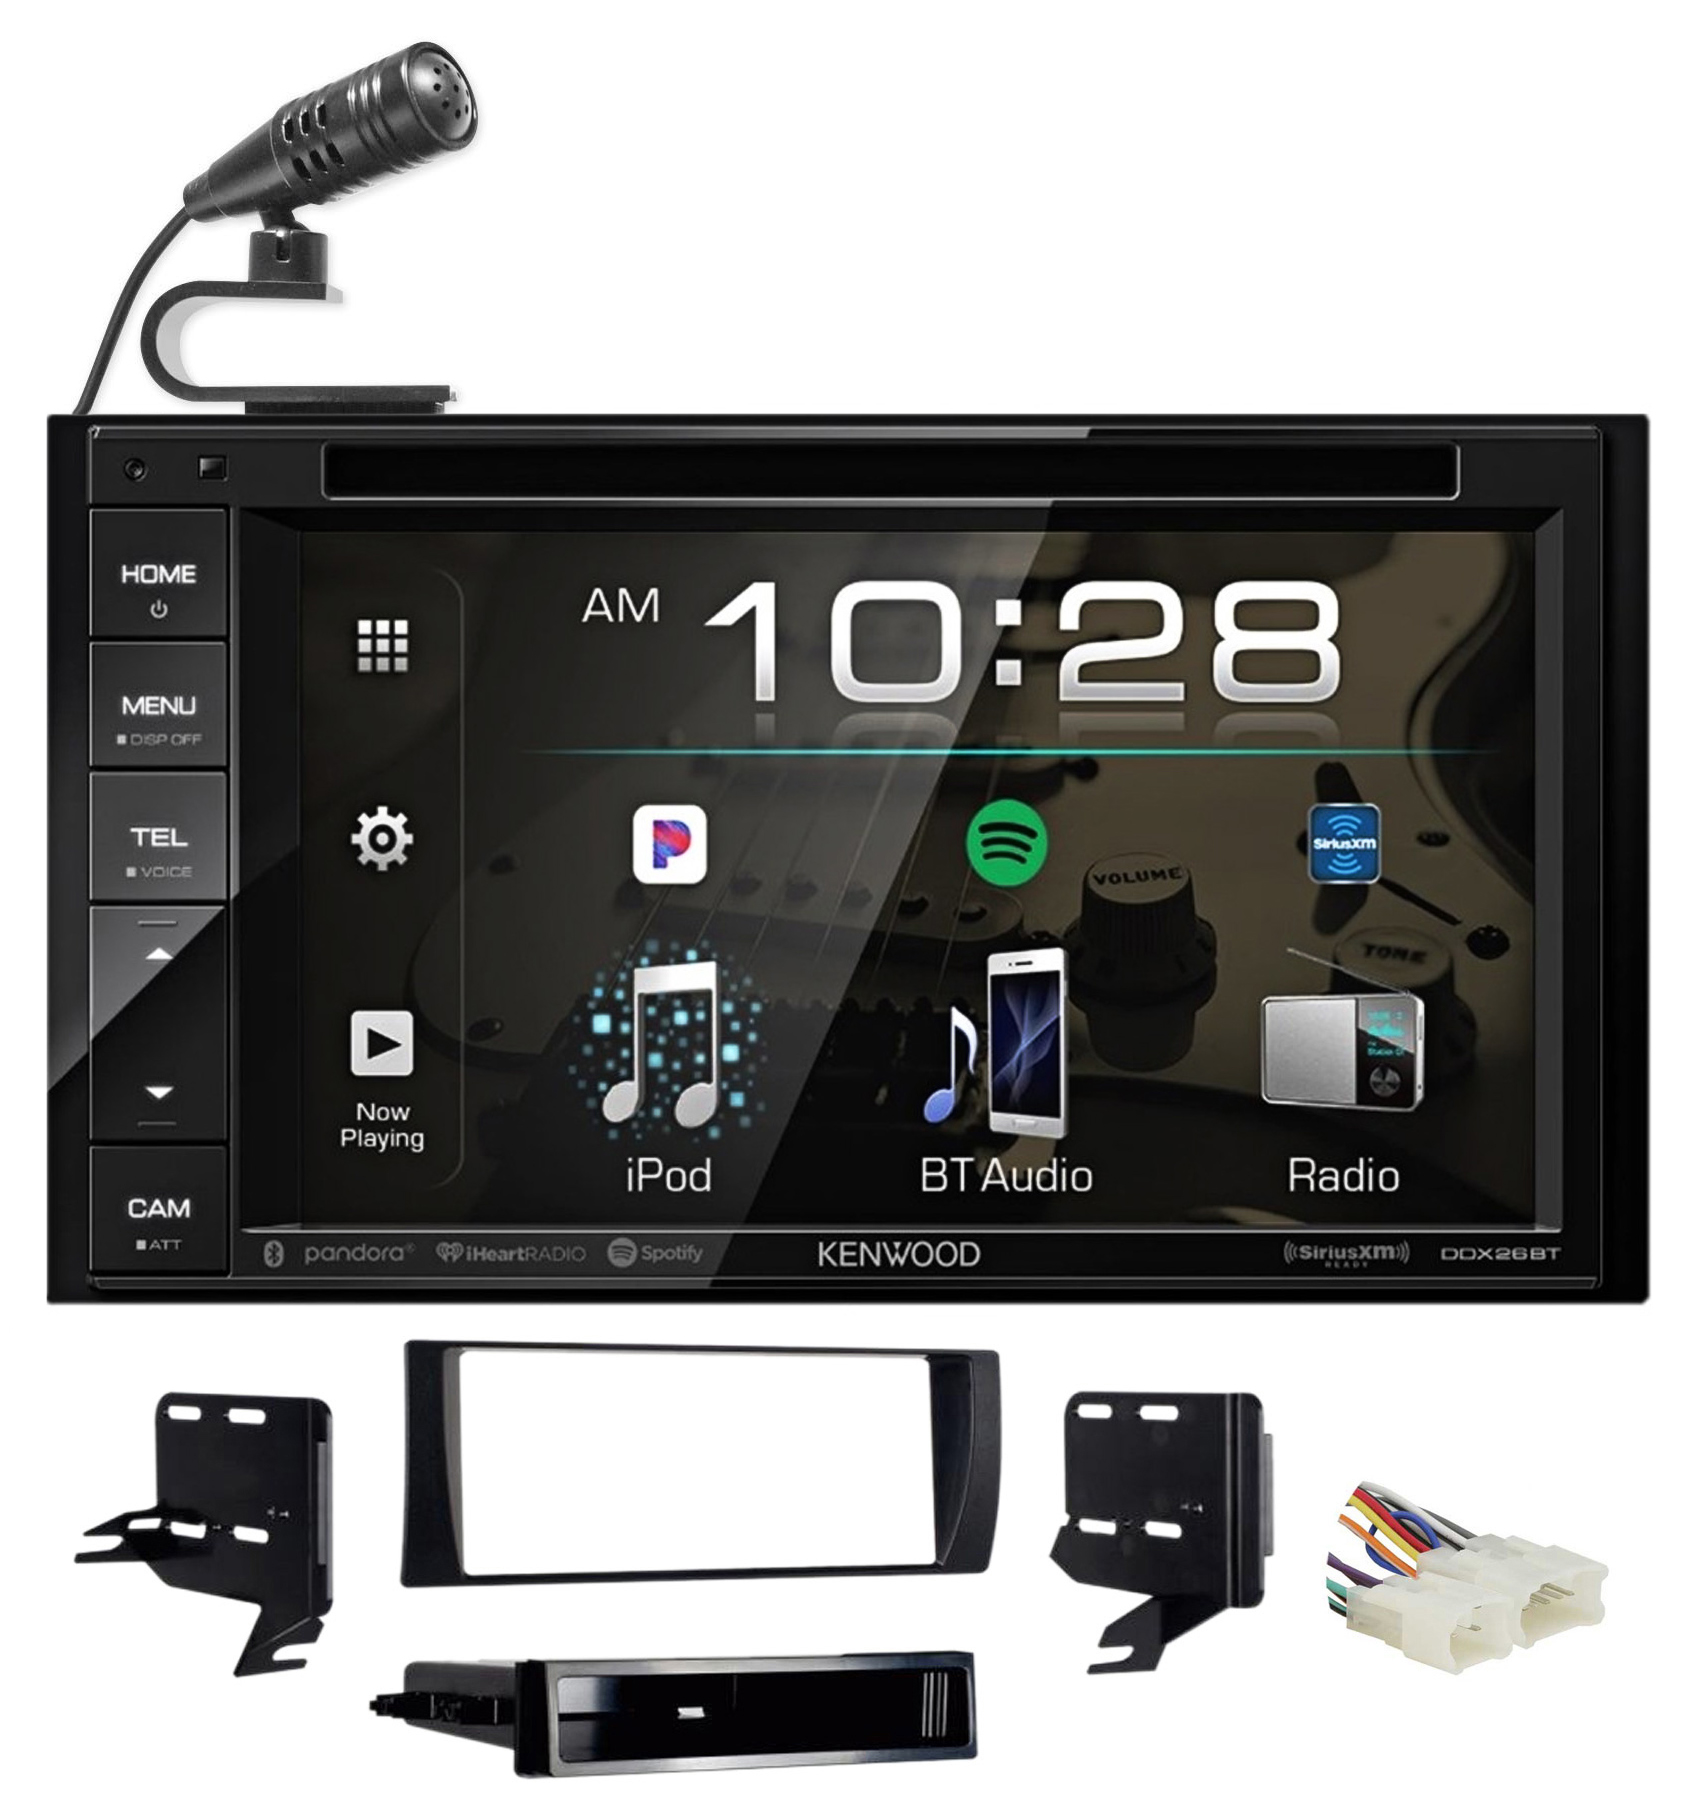 Kenwood DVD/iPhone/Bluetooth/Android Receiver Radio For 2002-2006 Toyota Camry